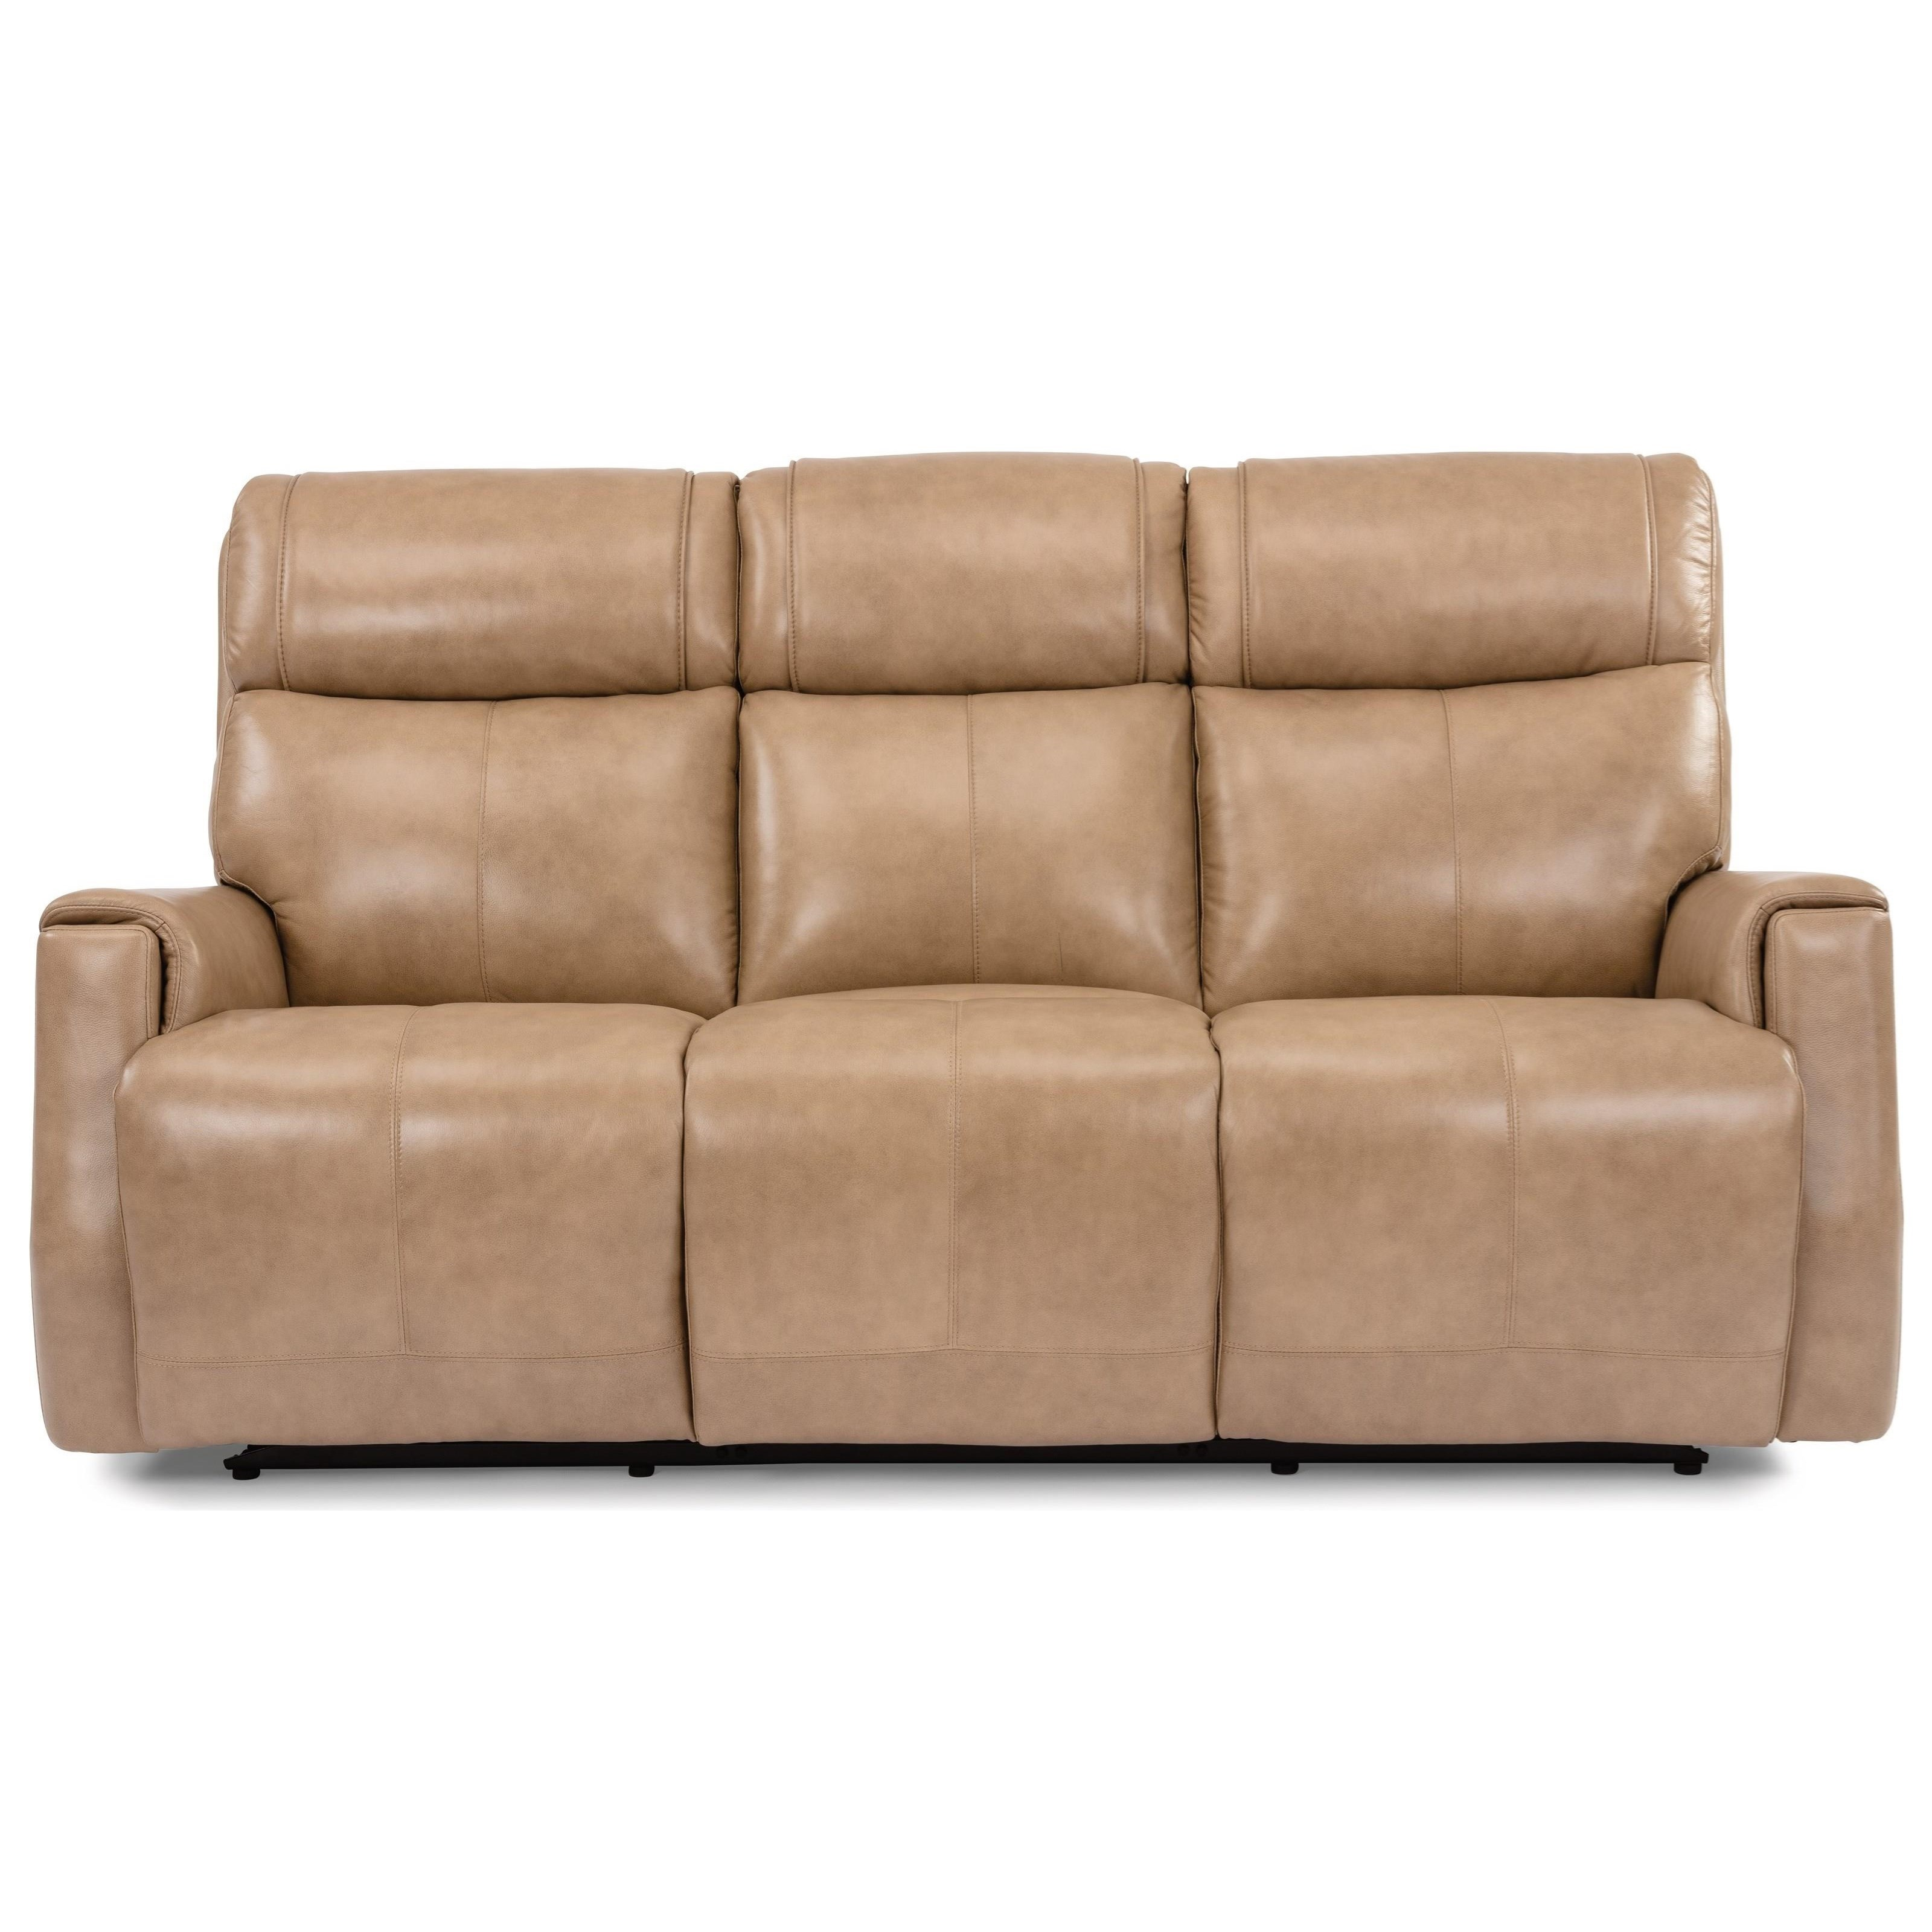 Latitudes - Holton Power Reclining Sofa by Flexsteel at Walker's Furniture